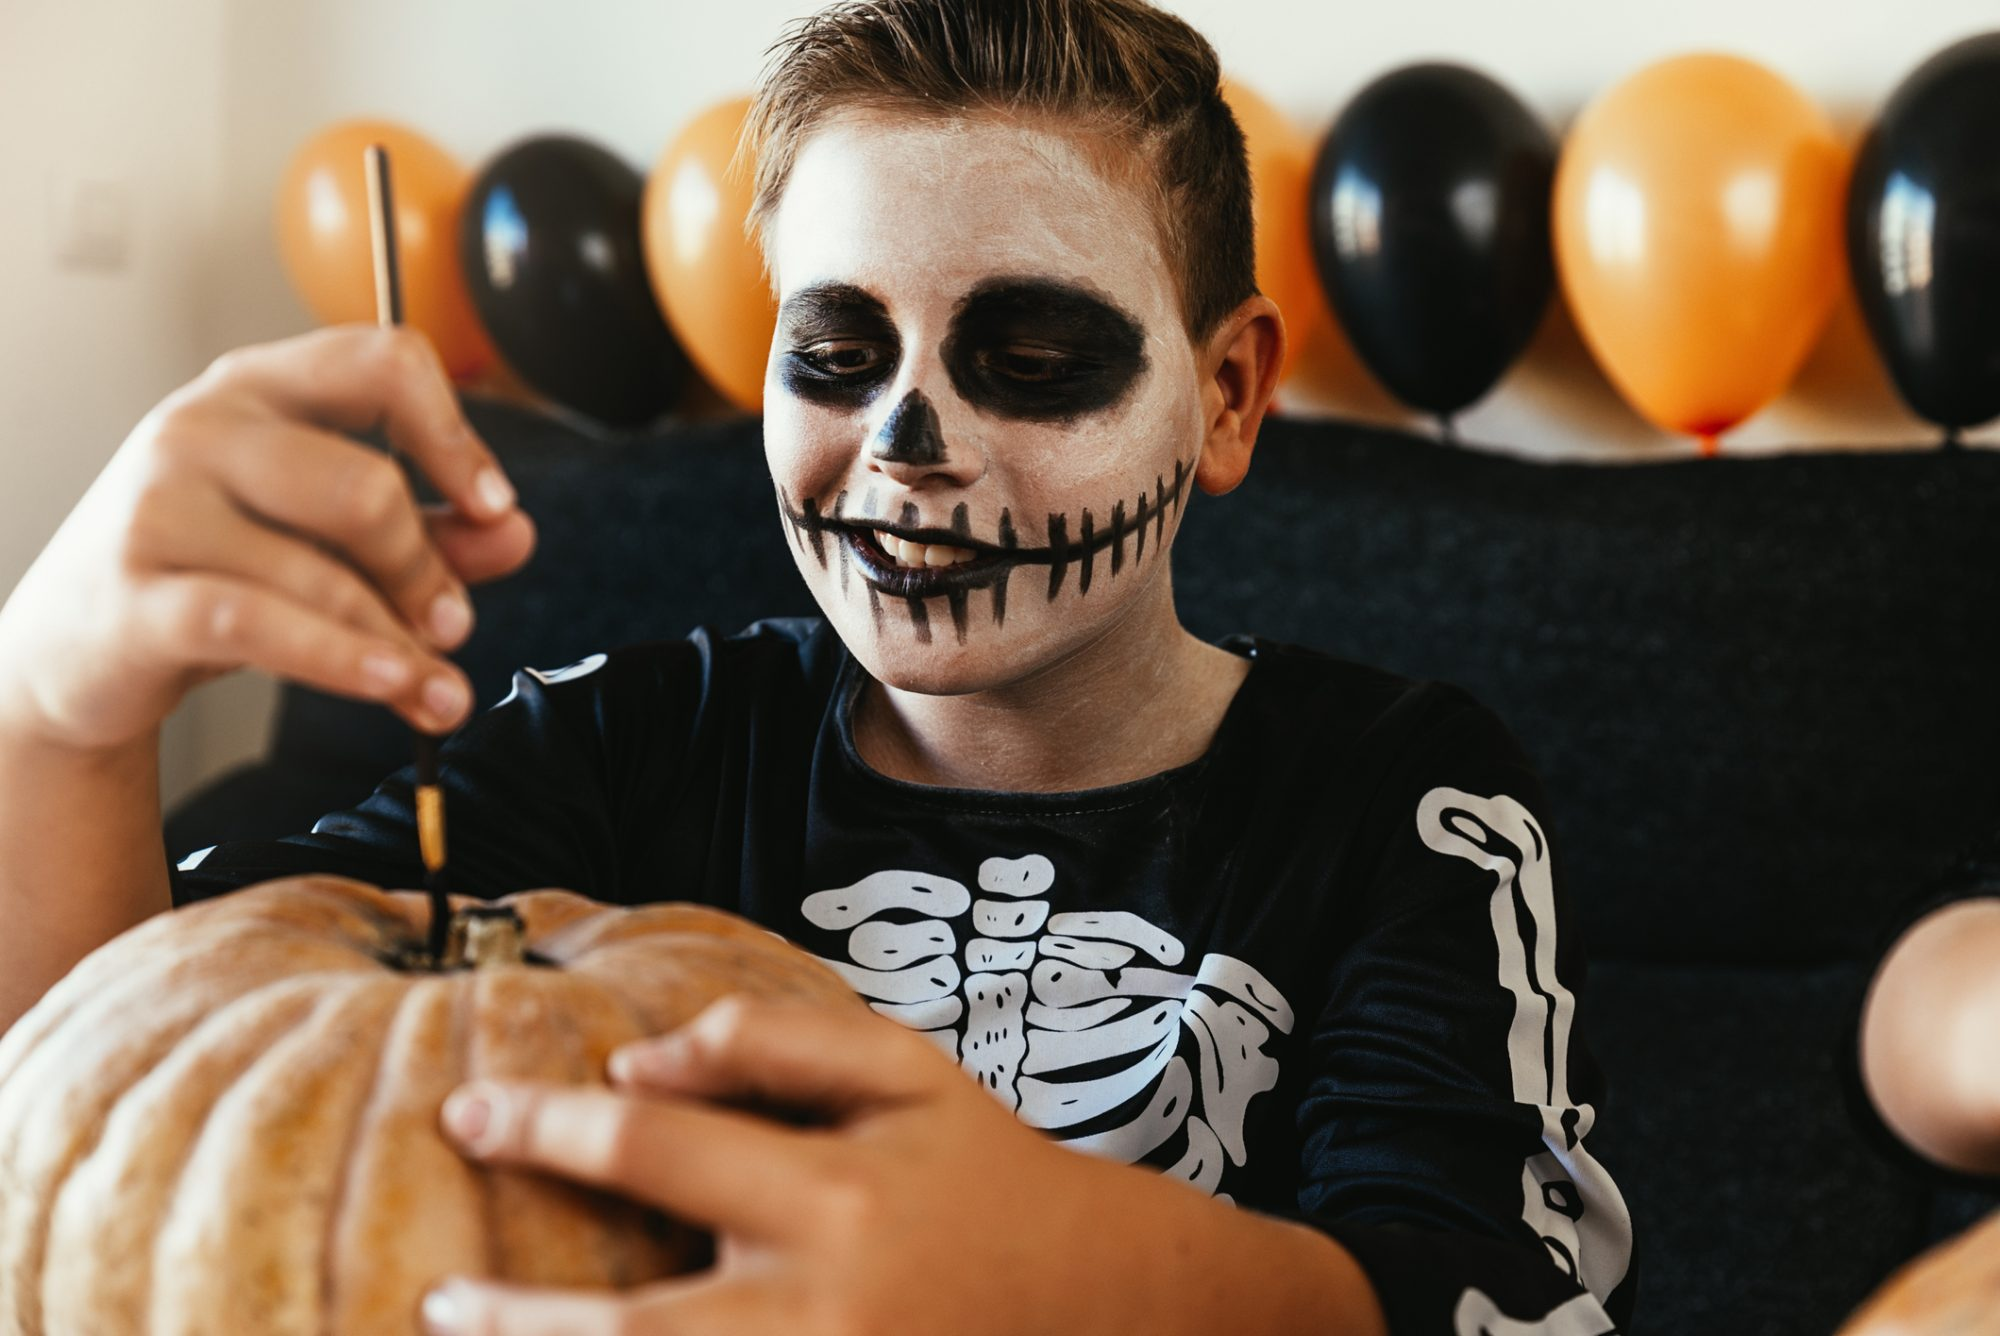 boy wearing skeleton face paint while paining a pumpkin